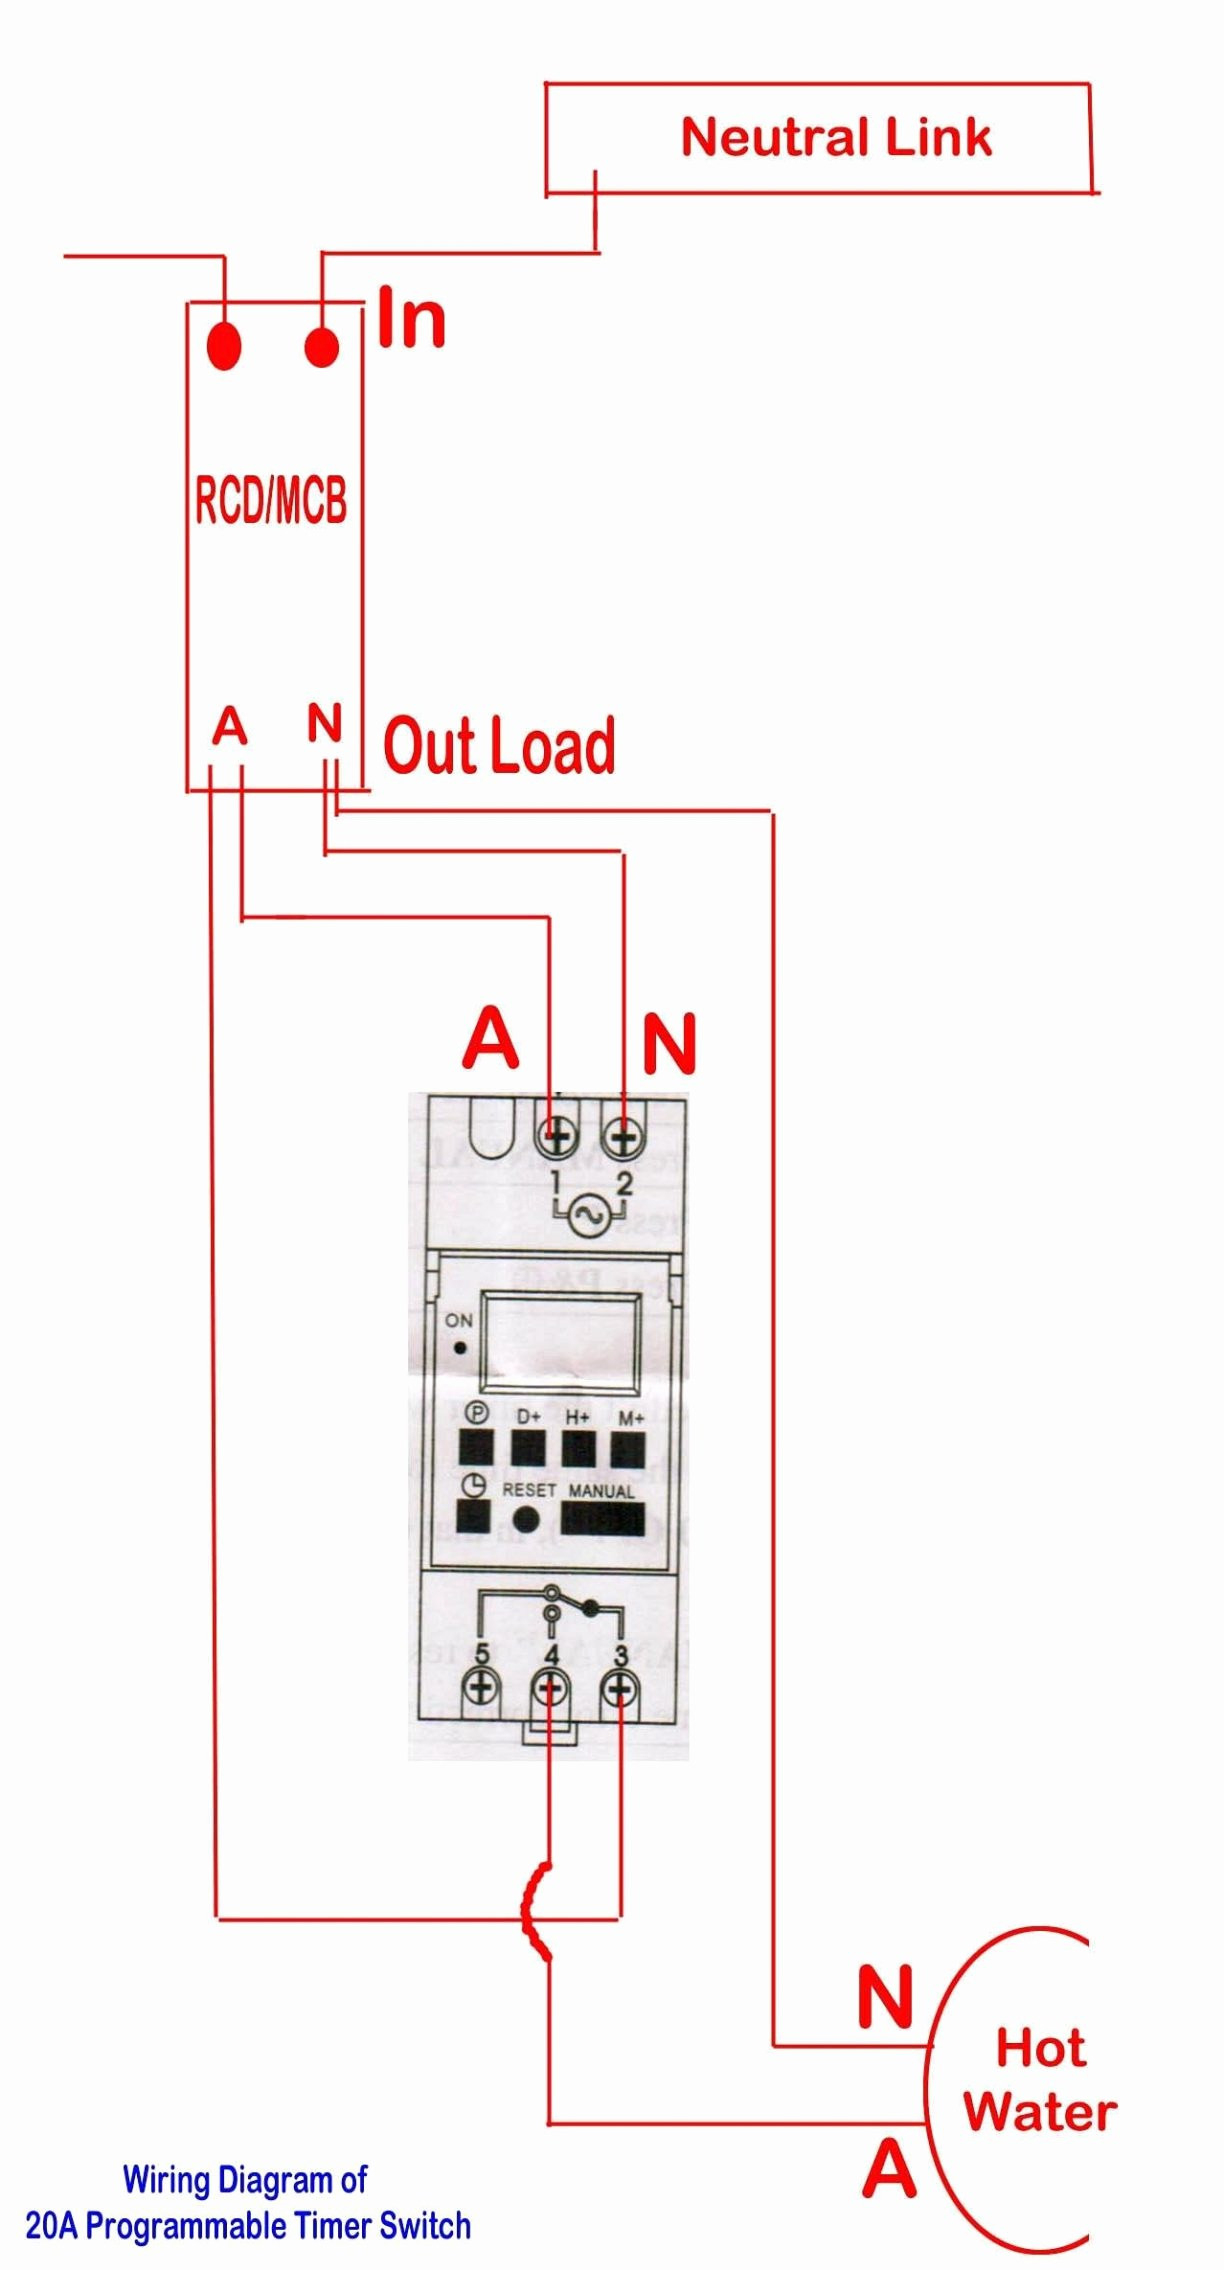 Switch Symbols Furthermore Leviton Double Pole Wiring Diagram - Leviton Double Switch Wiring Diagram